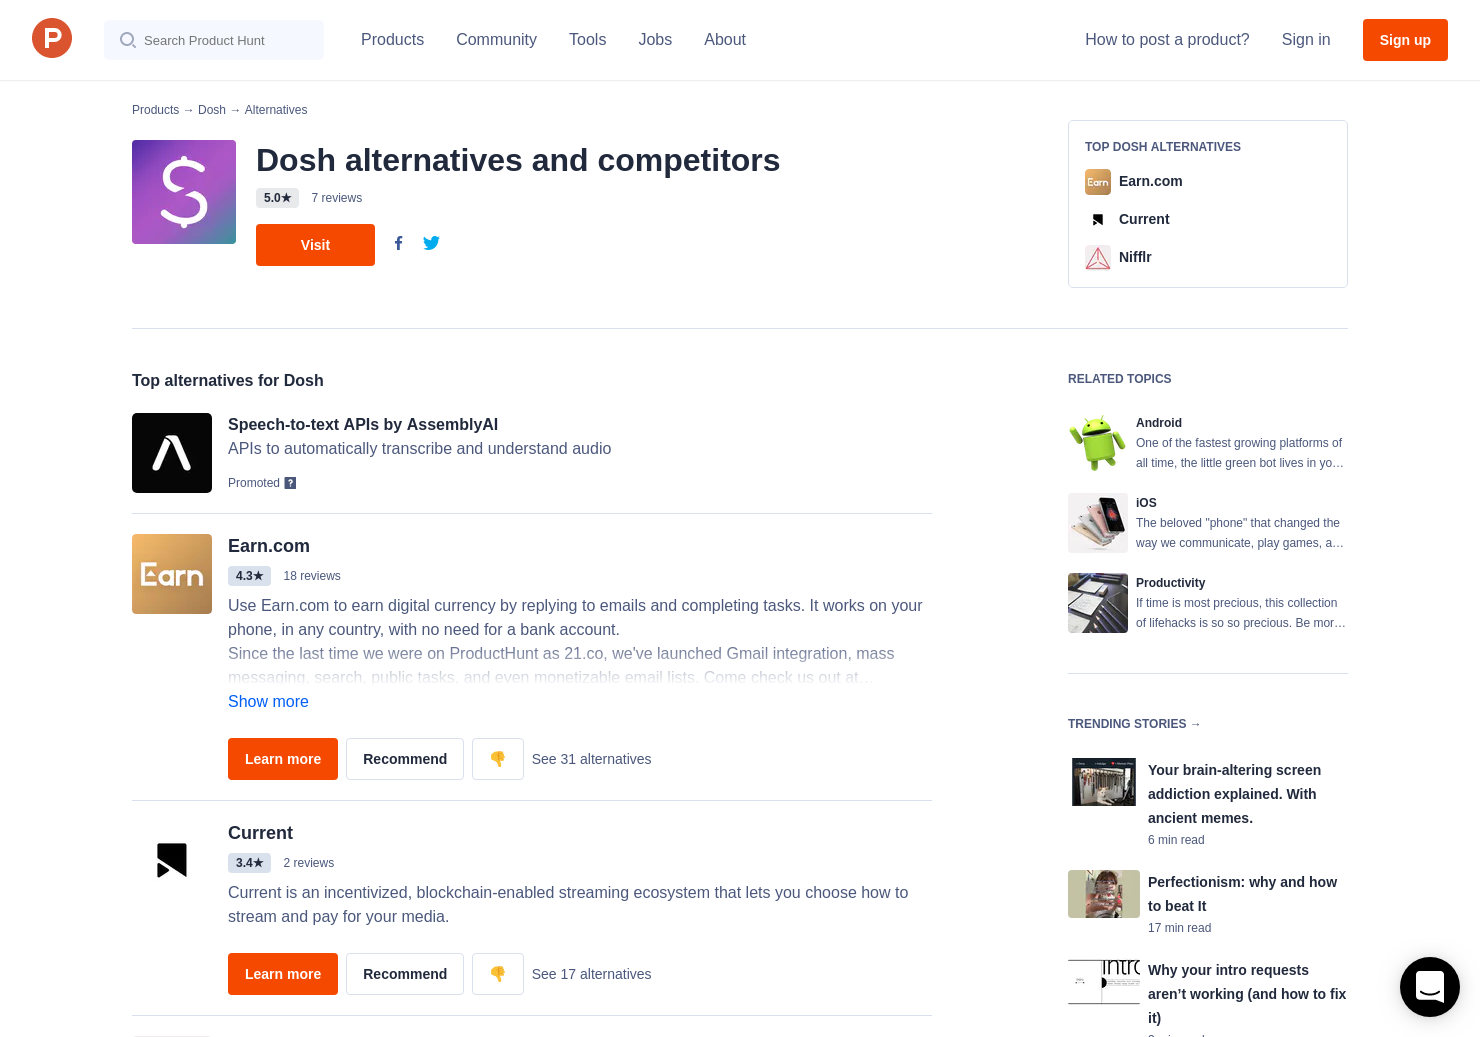 11 Alternatives to Dosh for Android, iPhone | Product Hunt